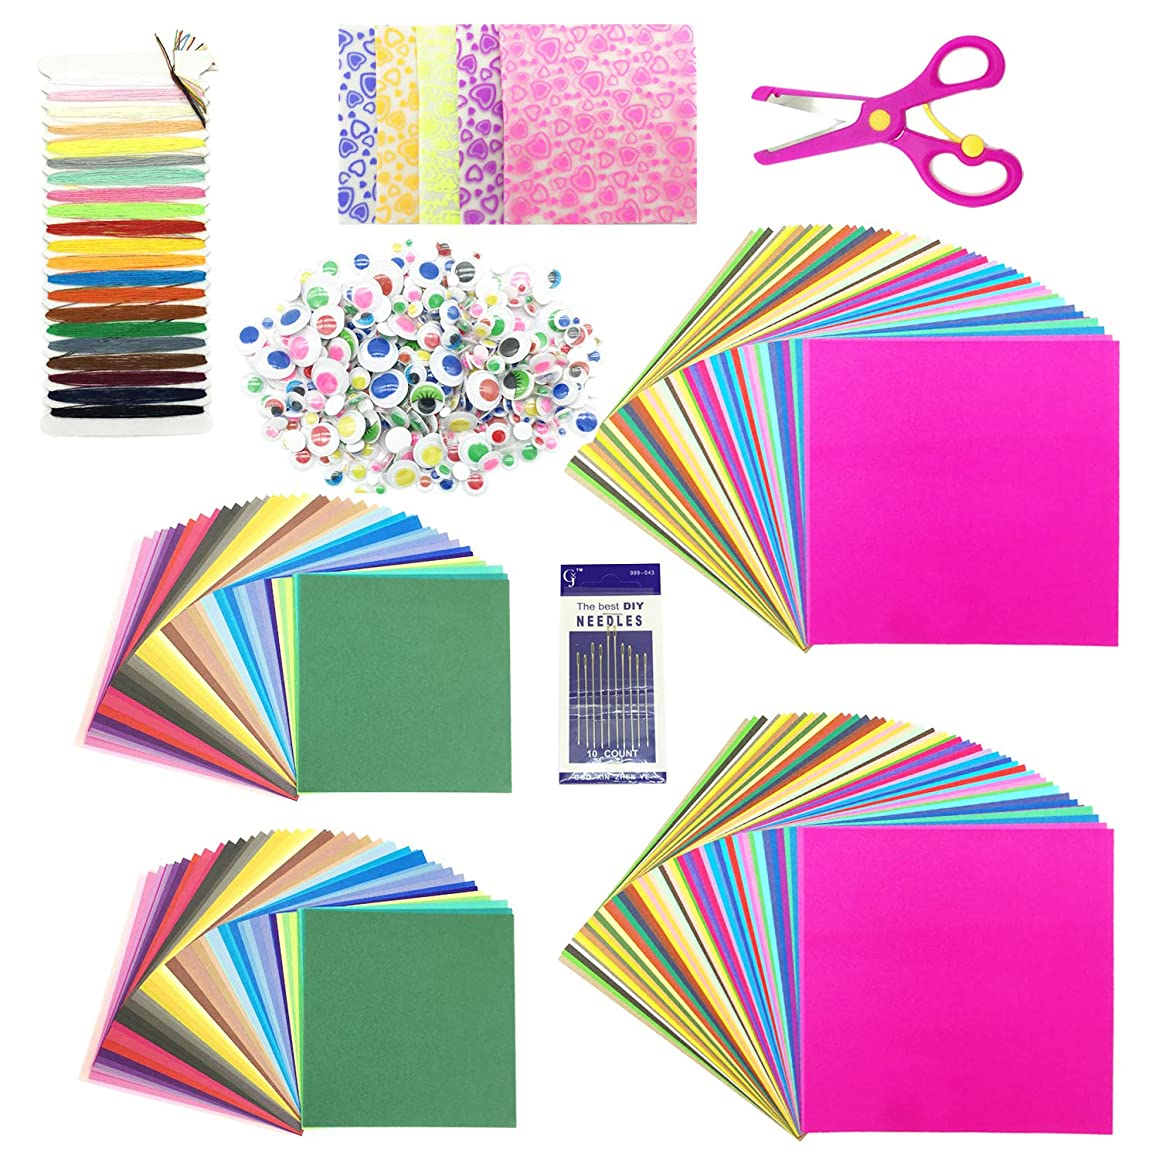 Wartoon 250 Pcs Origami Paper Folding Paper, 200 Sheet Origami Paper and 50 Luminous Sheet Single-Sided with Googly Wiggle Eyes Scissors Needle Thread